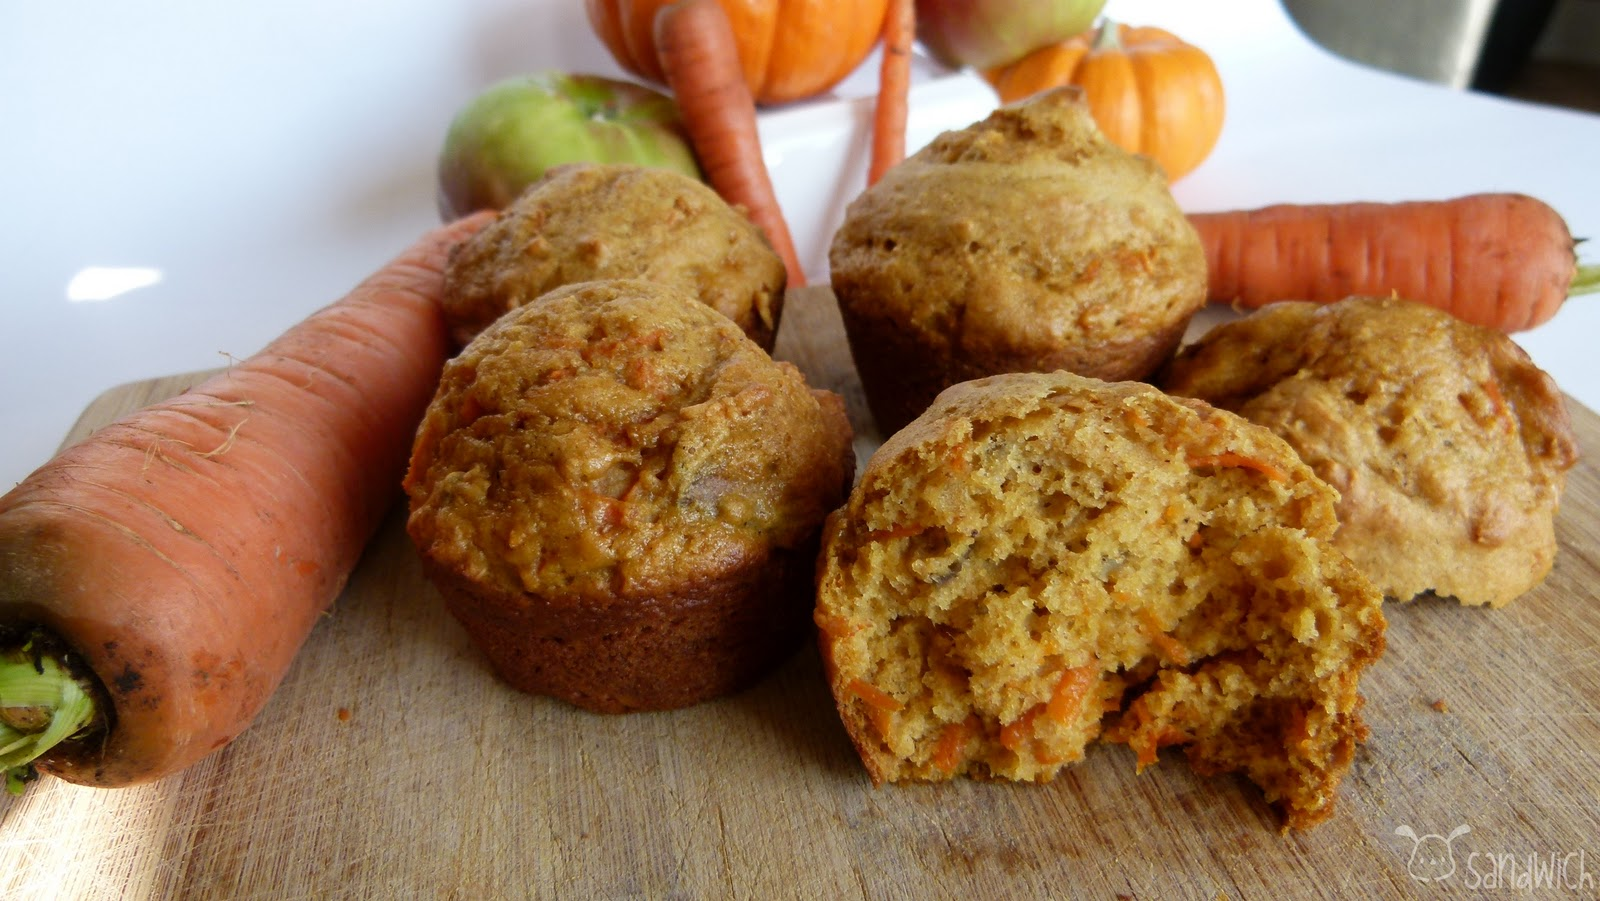 Oscar's Sandwich: Pumpkin, Apple, & Carrot Muffins